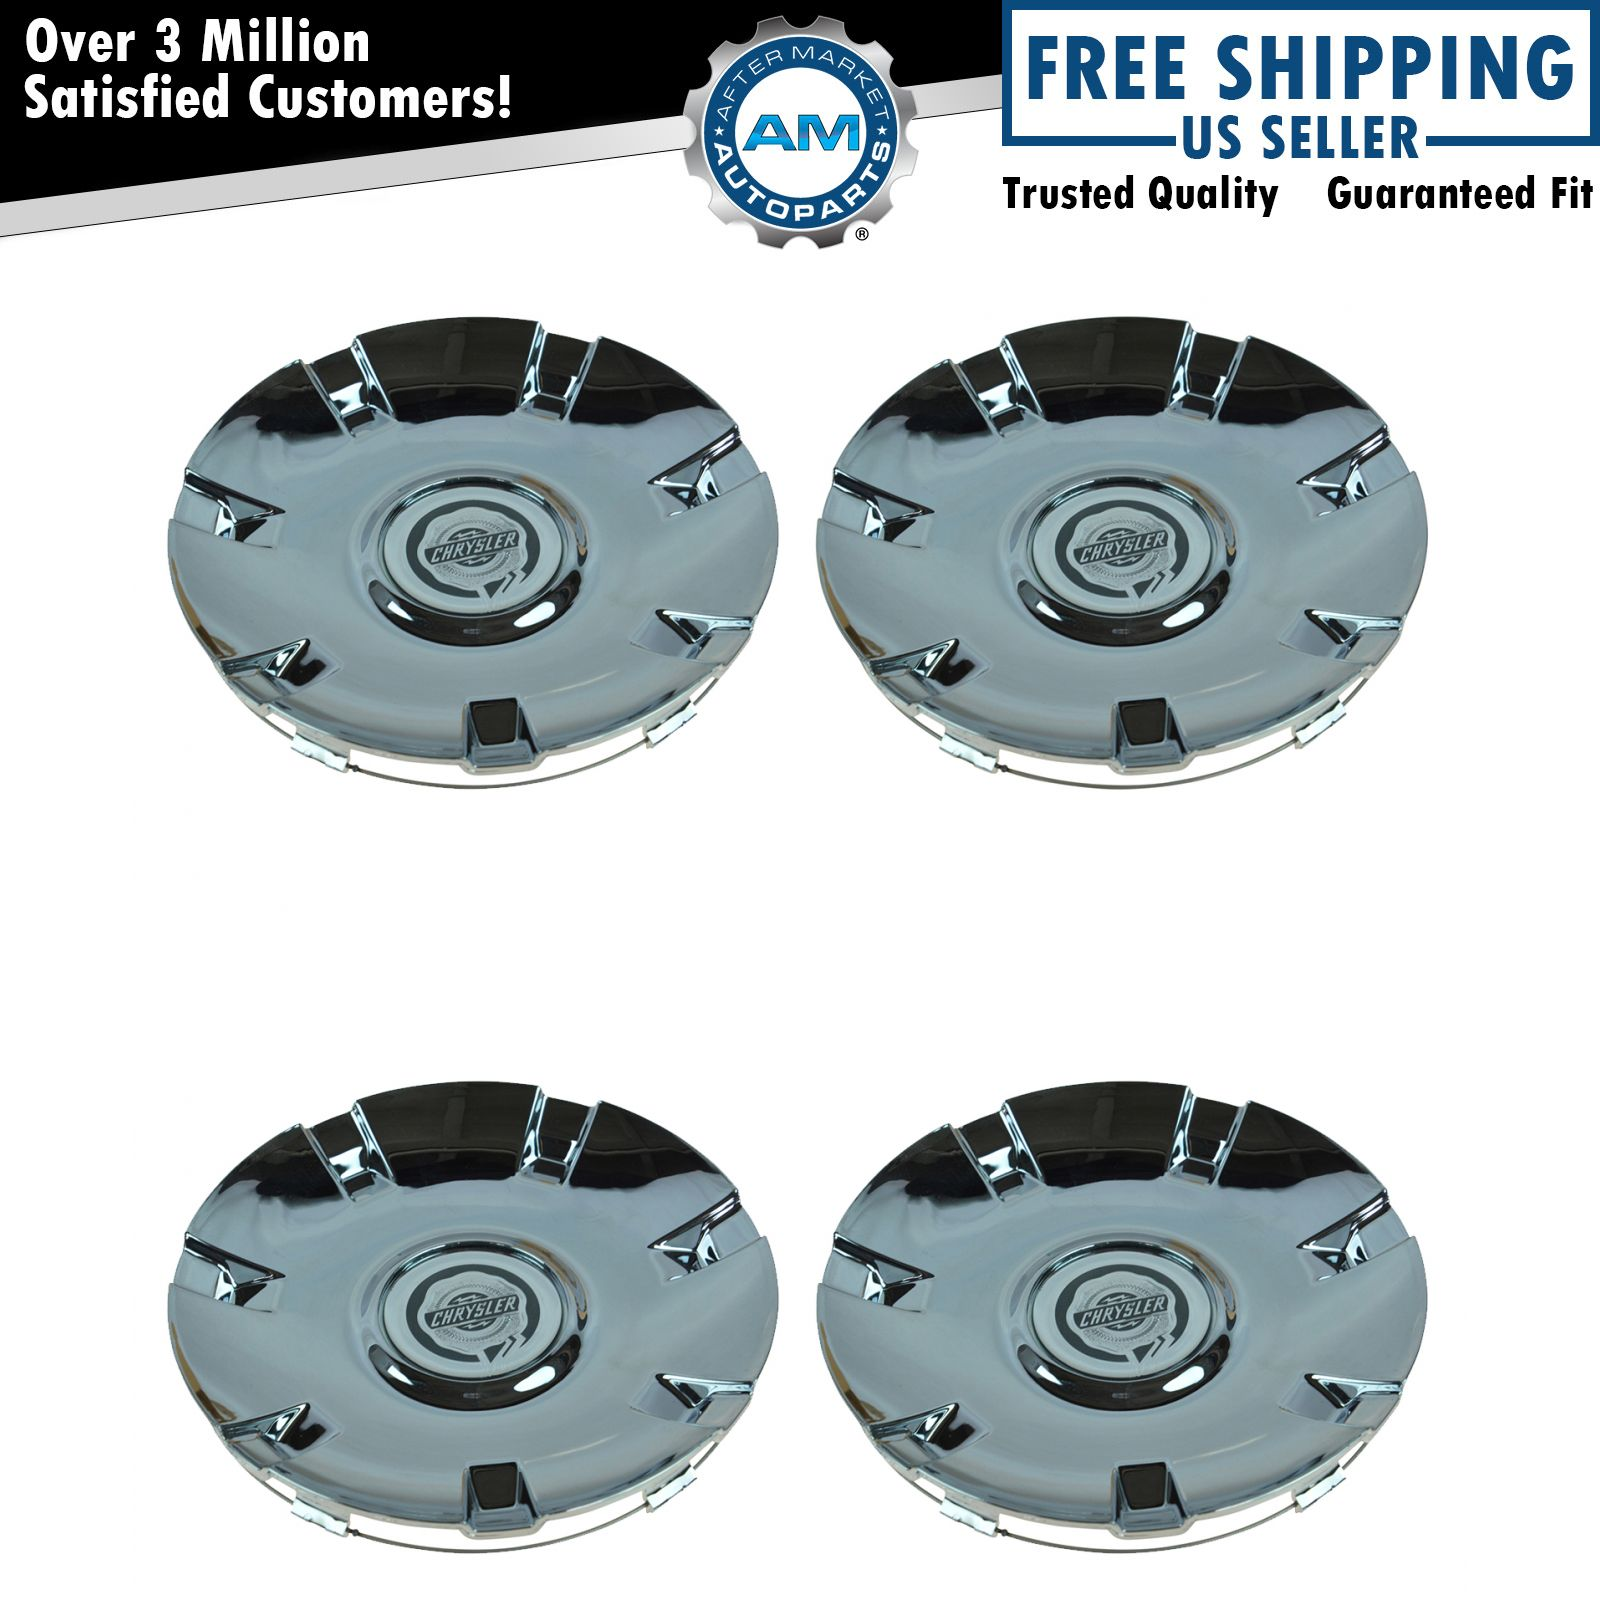 Chrysler Pacifica Rims For Sale: OEM Chrome Wheel Hub Center Cap Set For Chrysler Pacifica